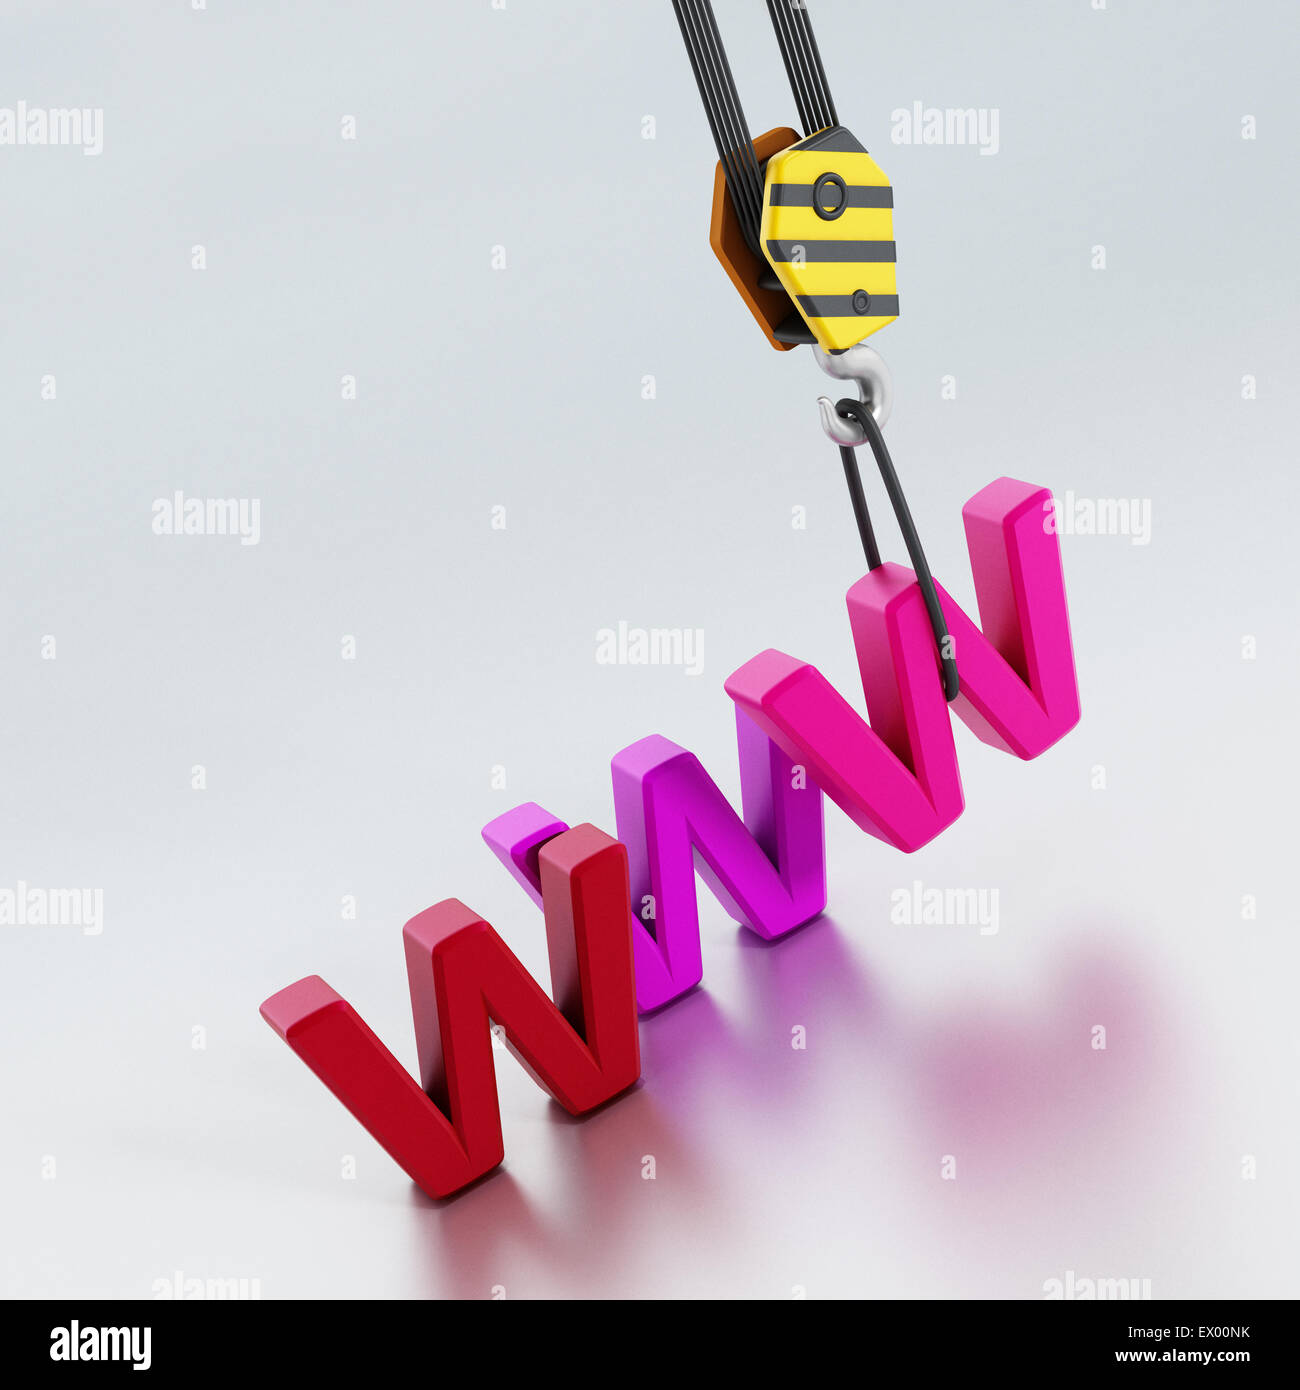 Crane carrying www letters representing website construction - Stock Image